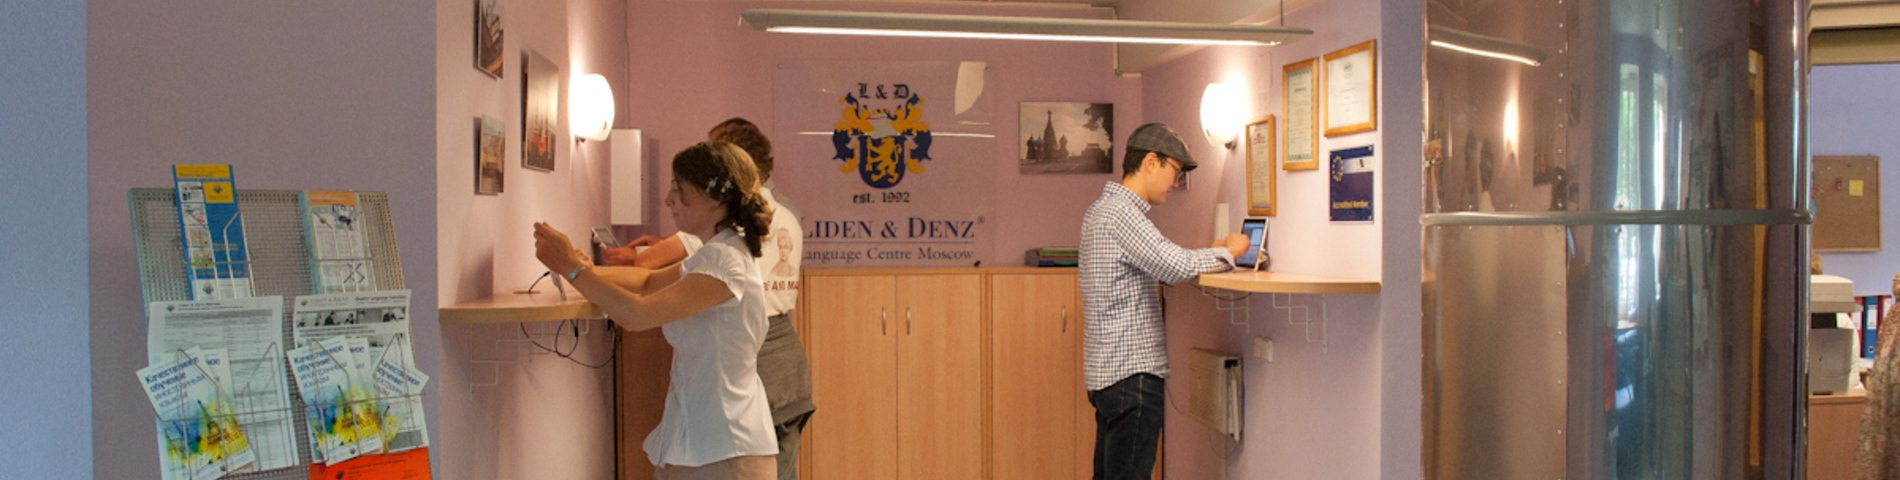 Liden & Denz Language Centre kuva 8